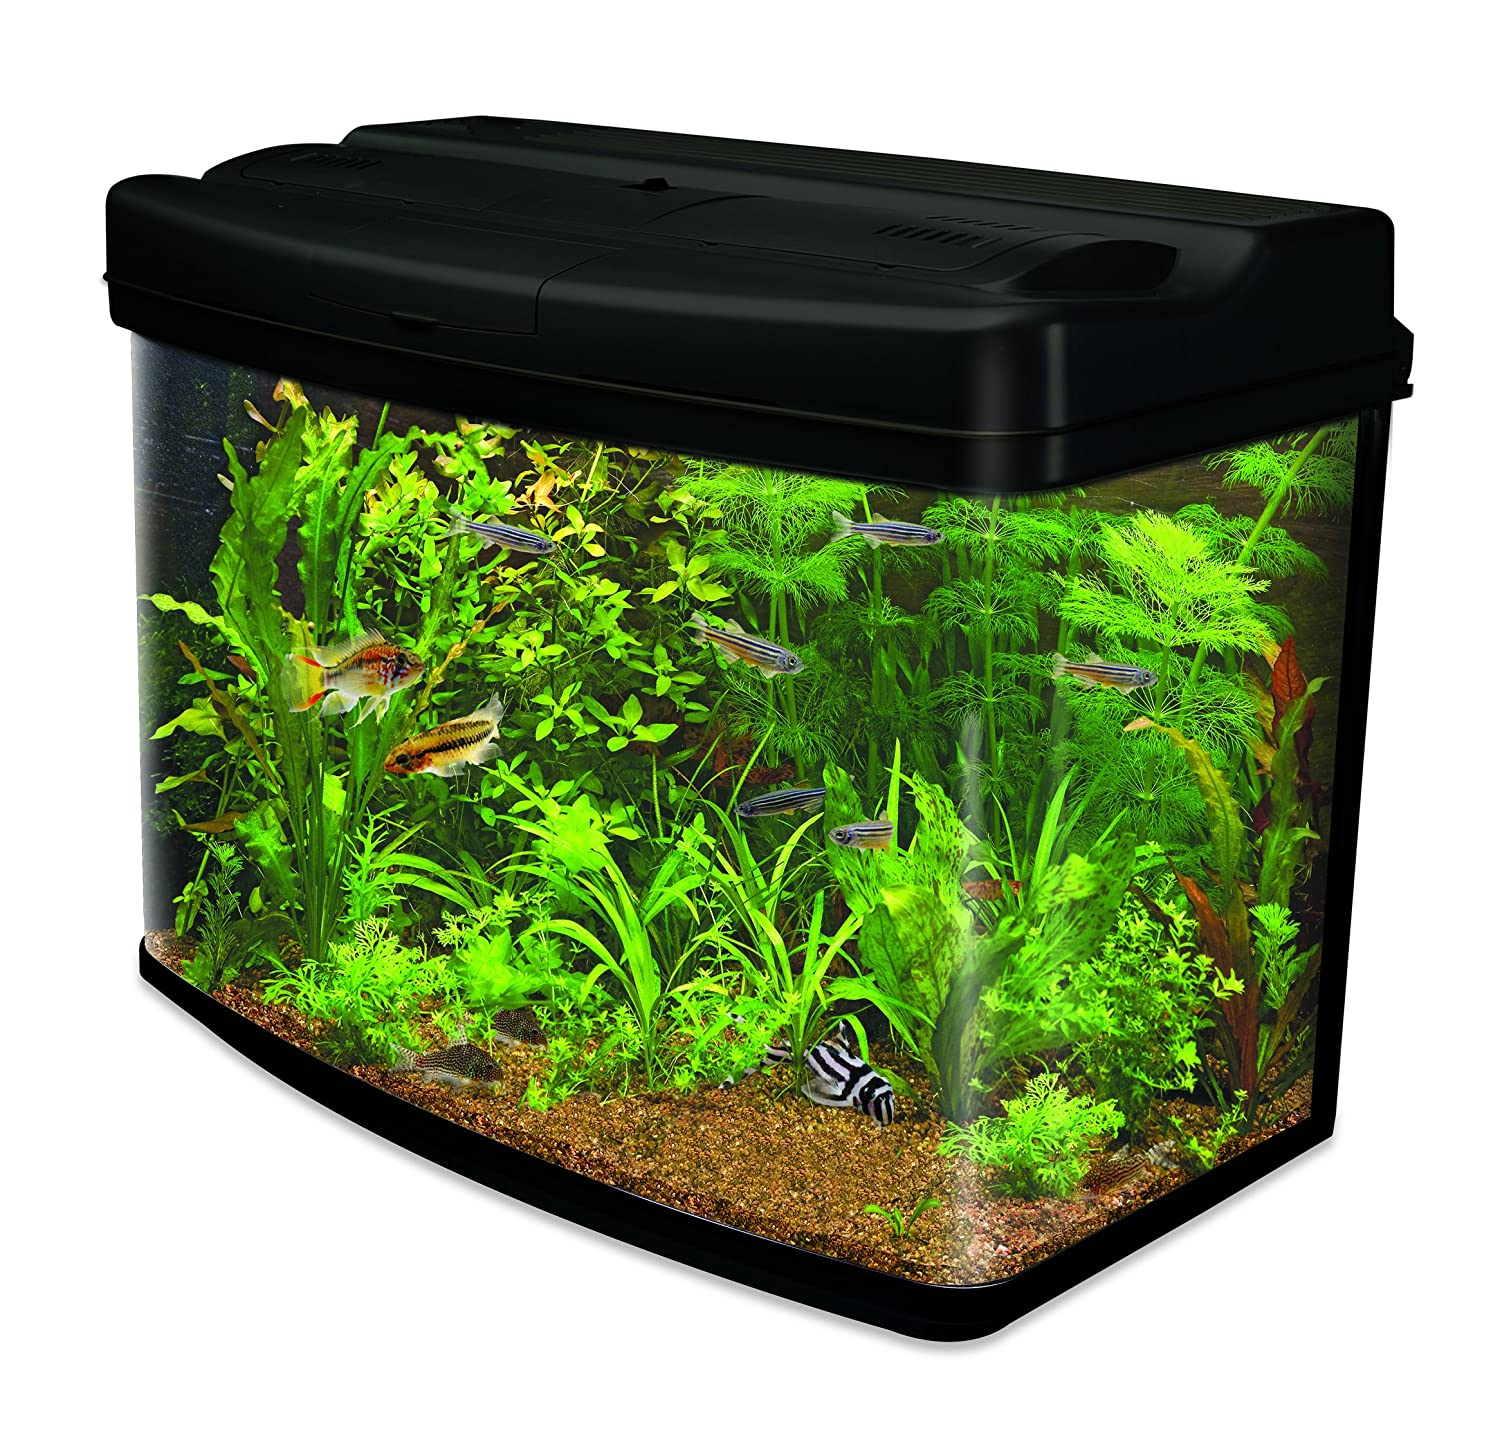 Fish for aquarium online - Interpet Ama0380 Fish Pod Glass Aquarium Fish Tank